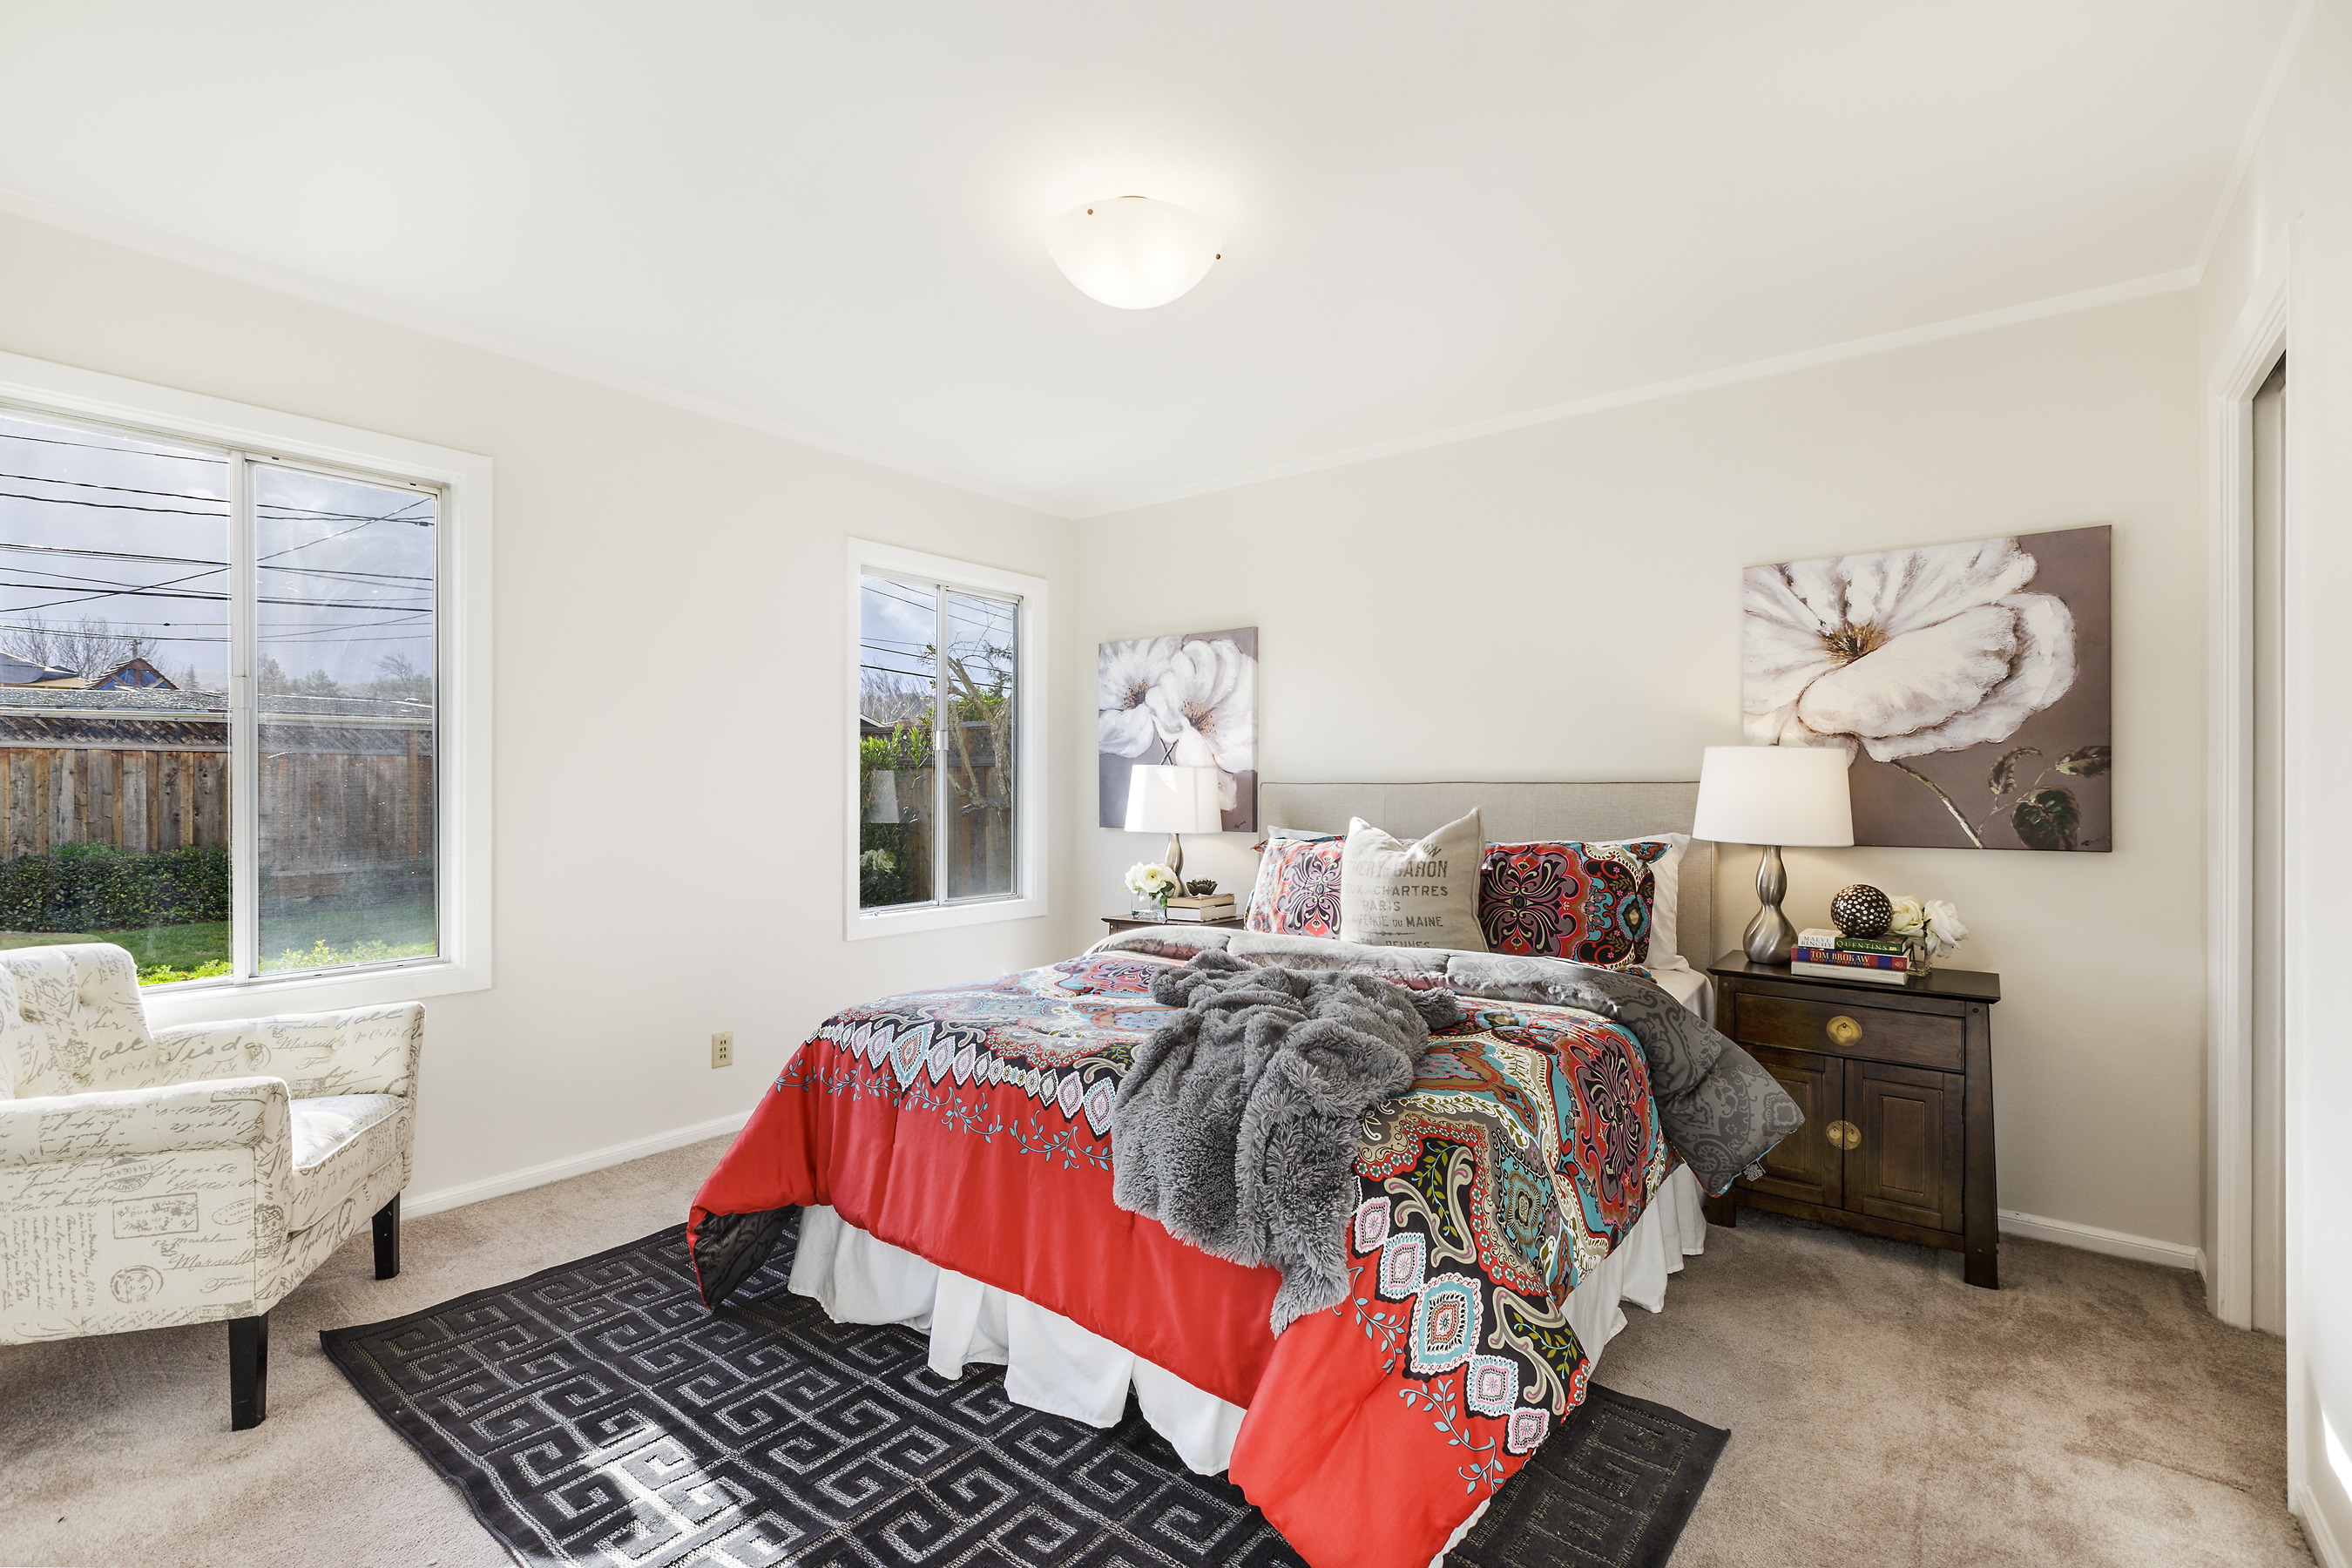 11-1260-Carson-1bed-high-res